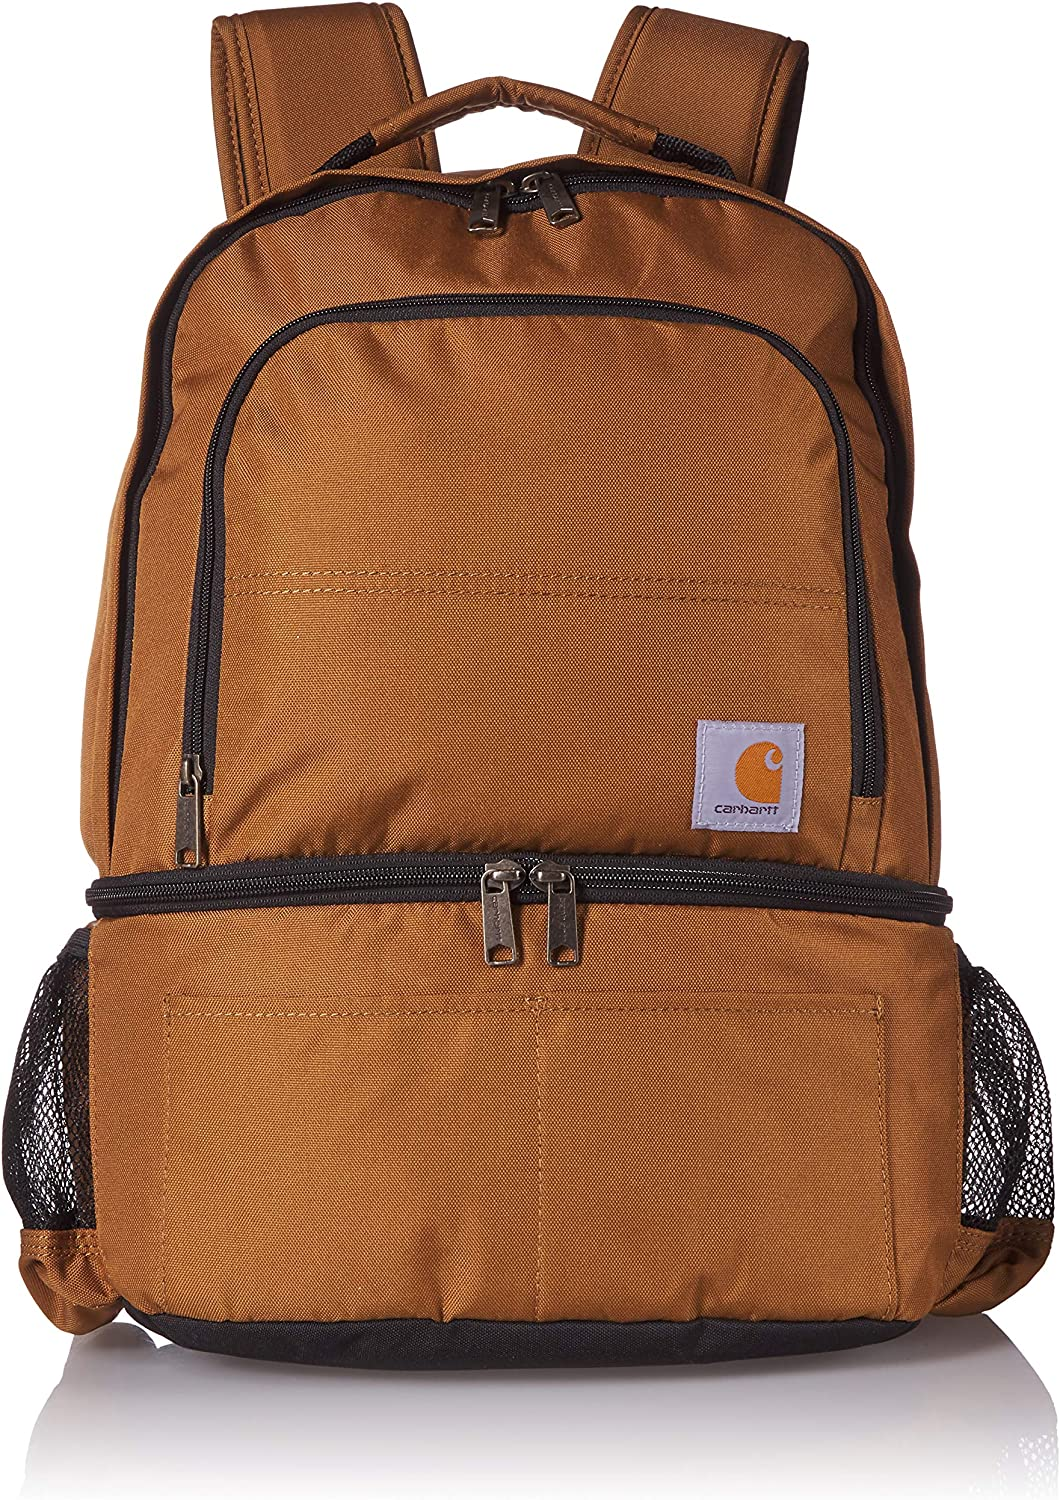 Carhartt 2-in-1 Insulated Cooler Backpack